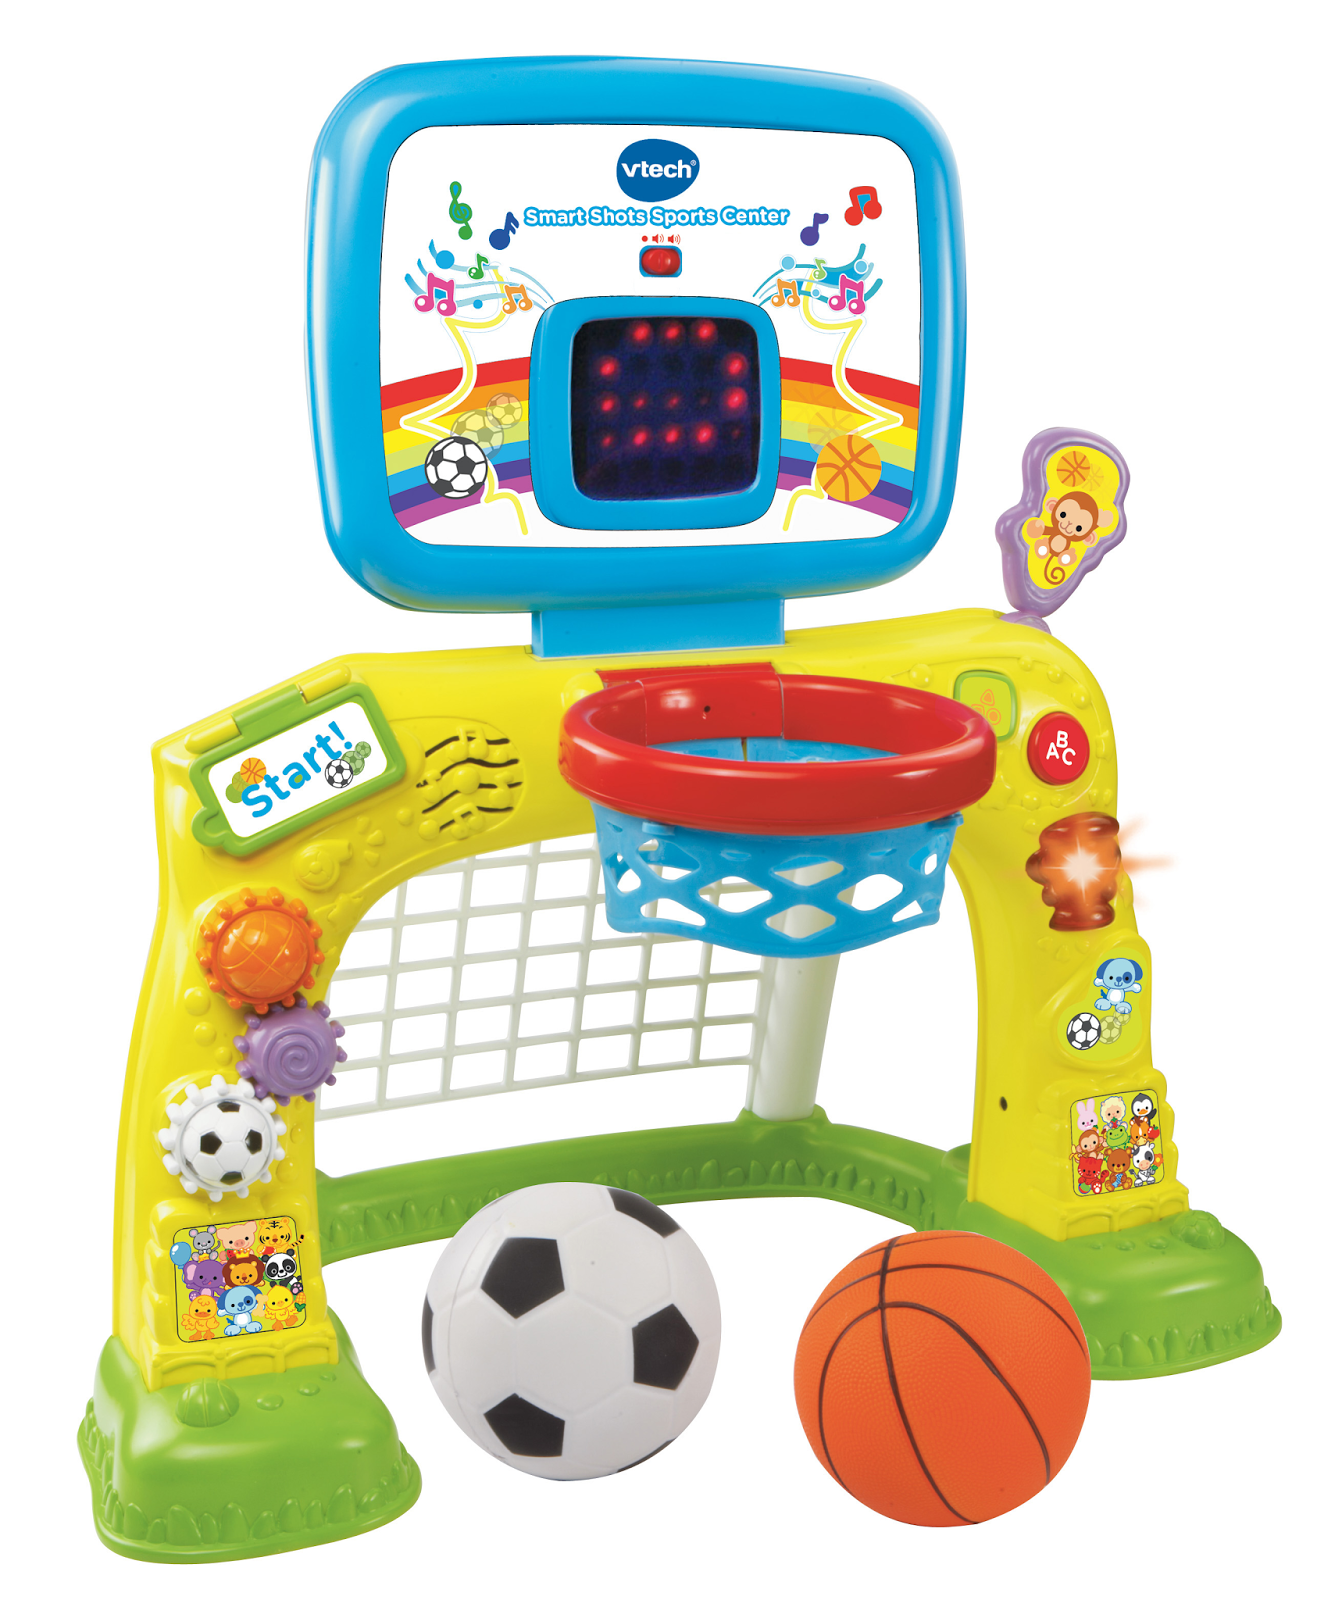 vtech learning toys giveaway  11  14 us